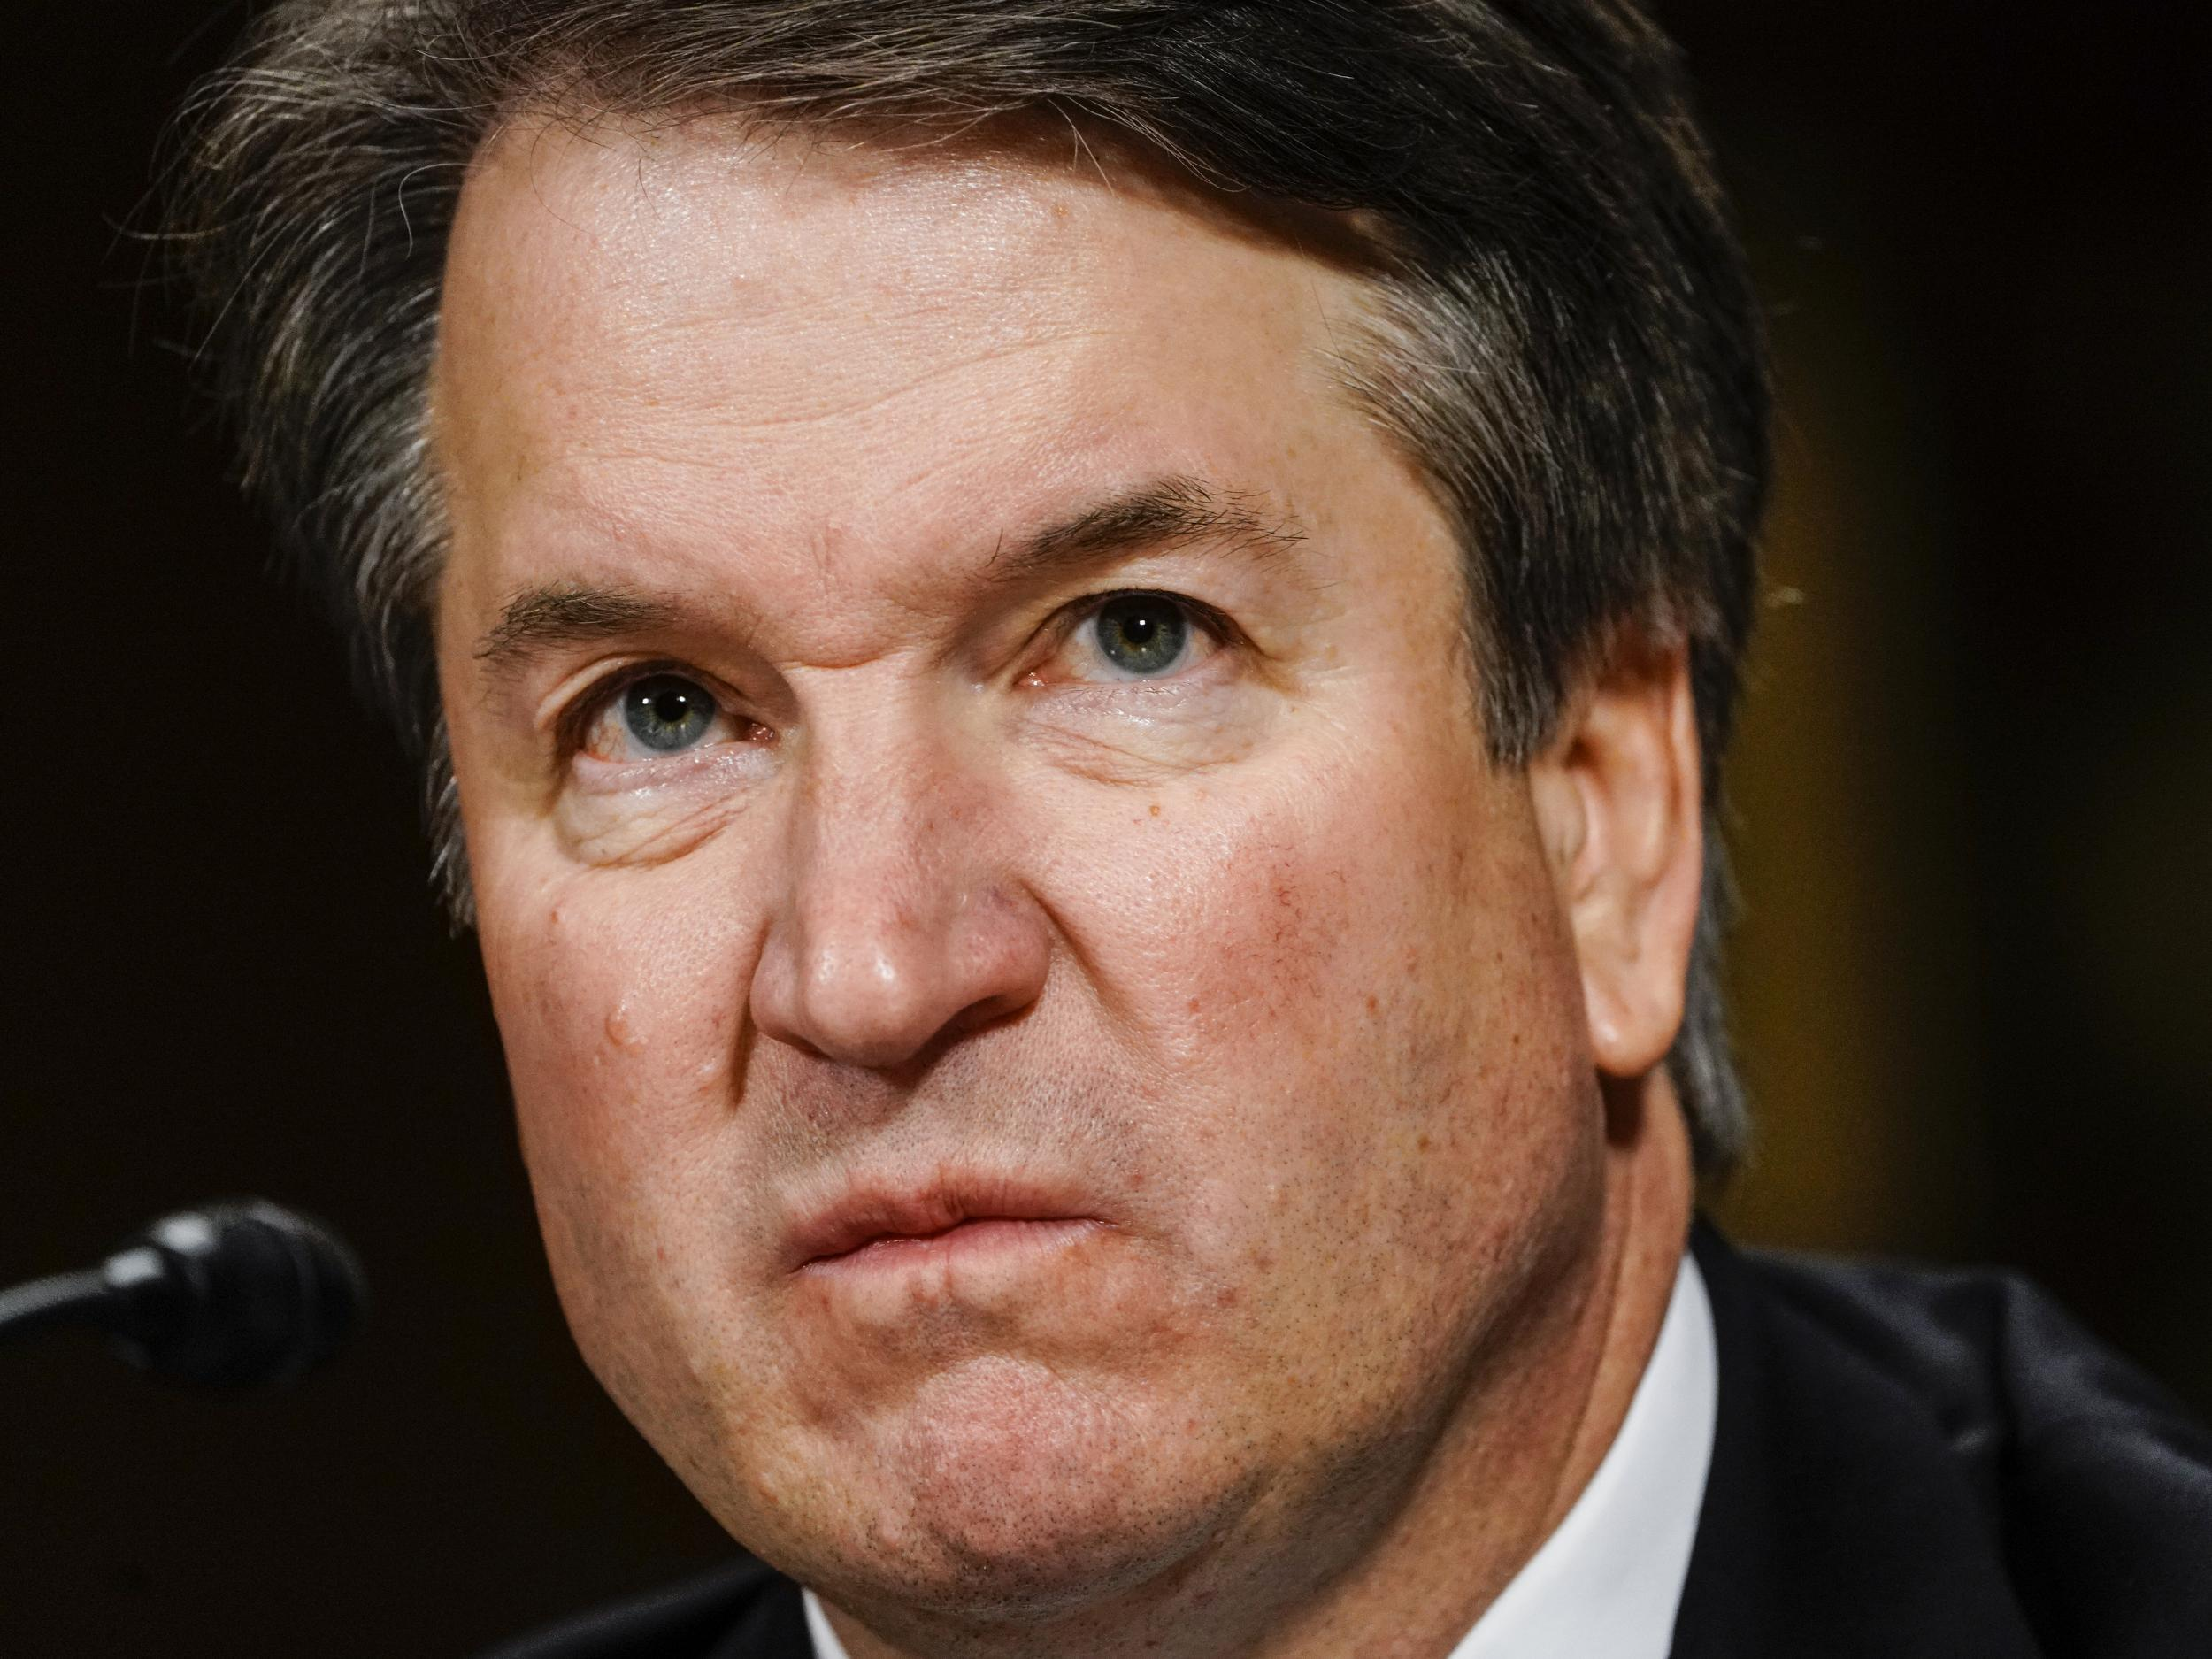 Brett Kavanaugh: We spoke to the law professors trying to derail Trump's Supreme Court nominee